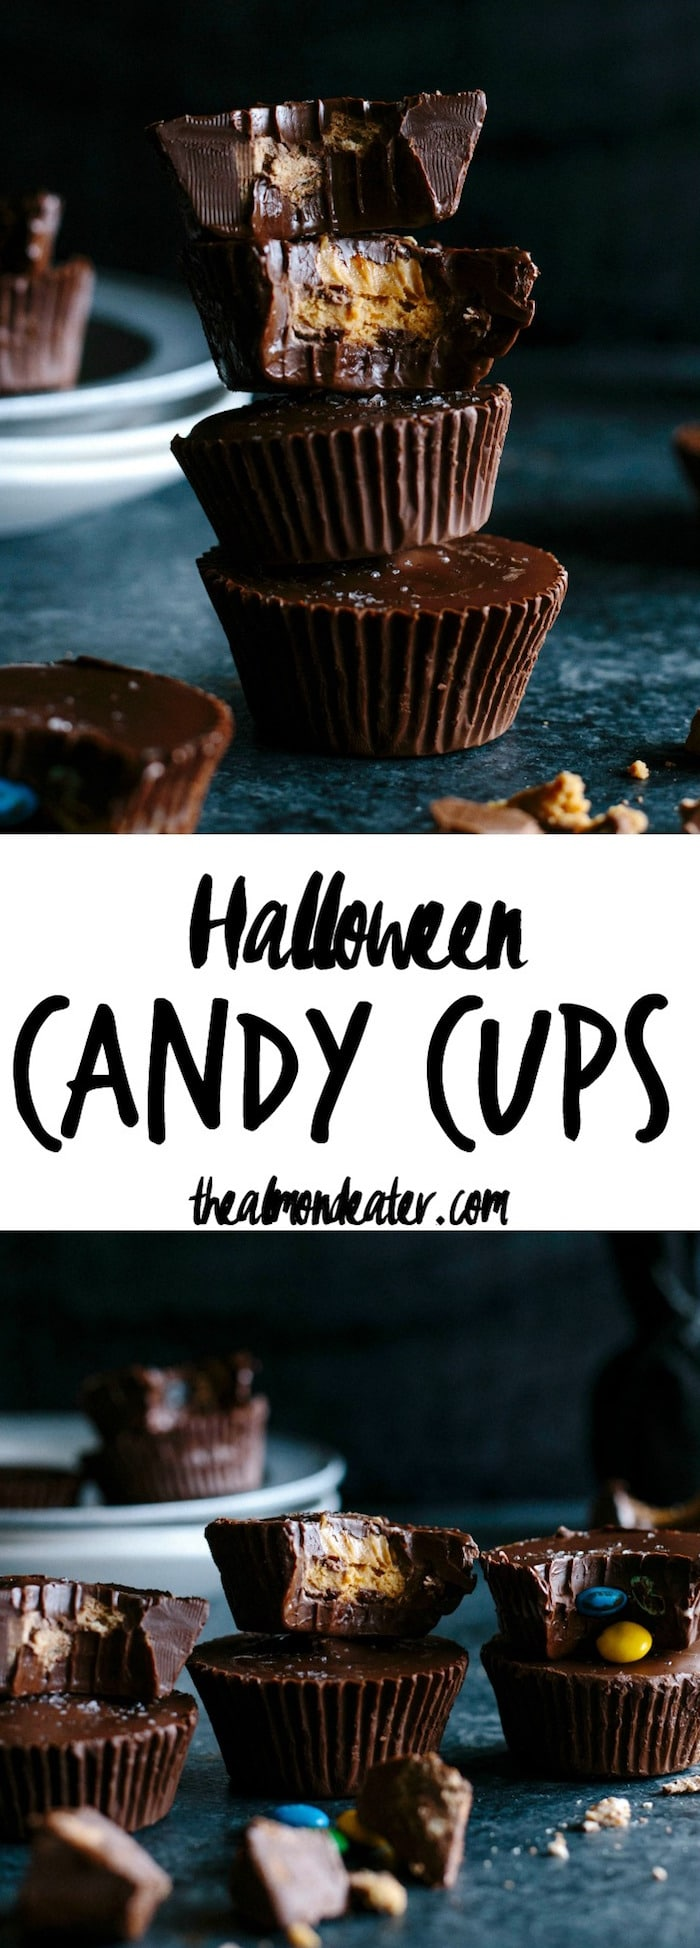 Halloween Candy Cups | Use up leftover Halloween candy and whip up these 3-ingredient candy cups! | thealmondeater.com